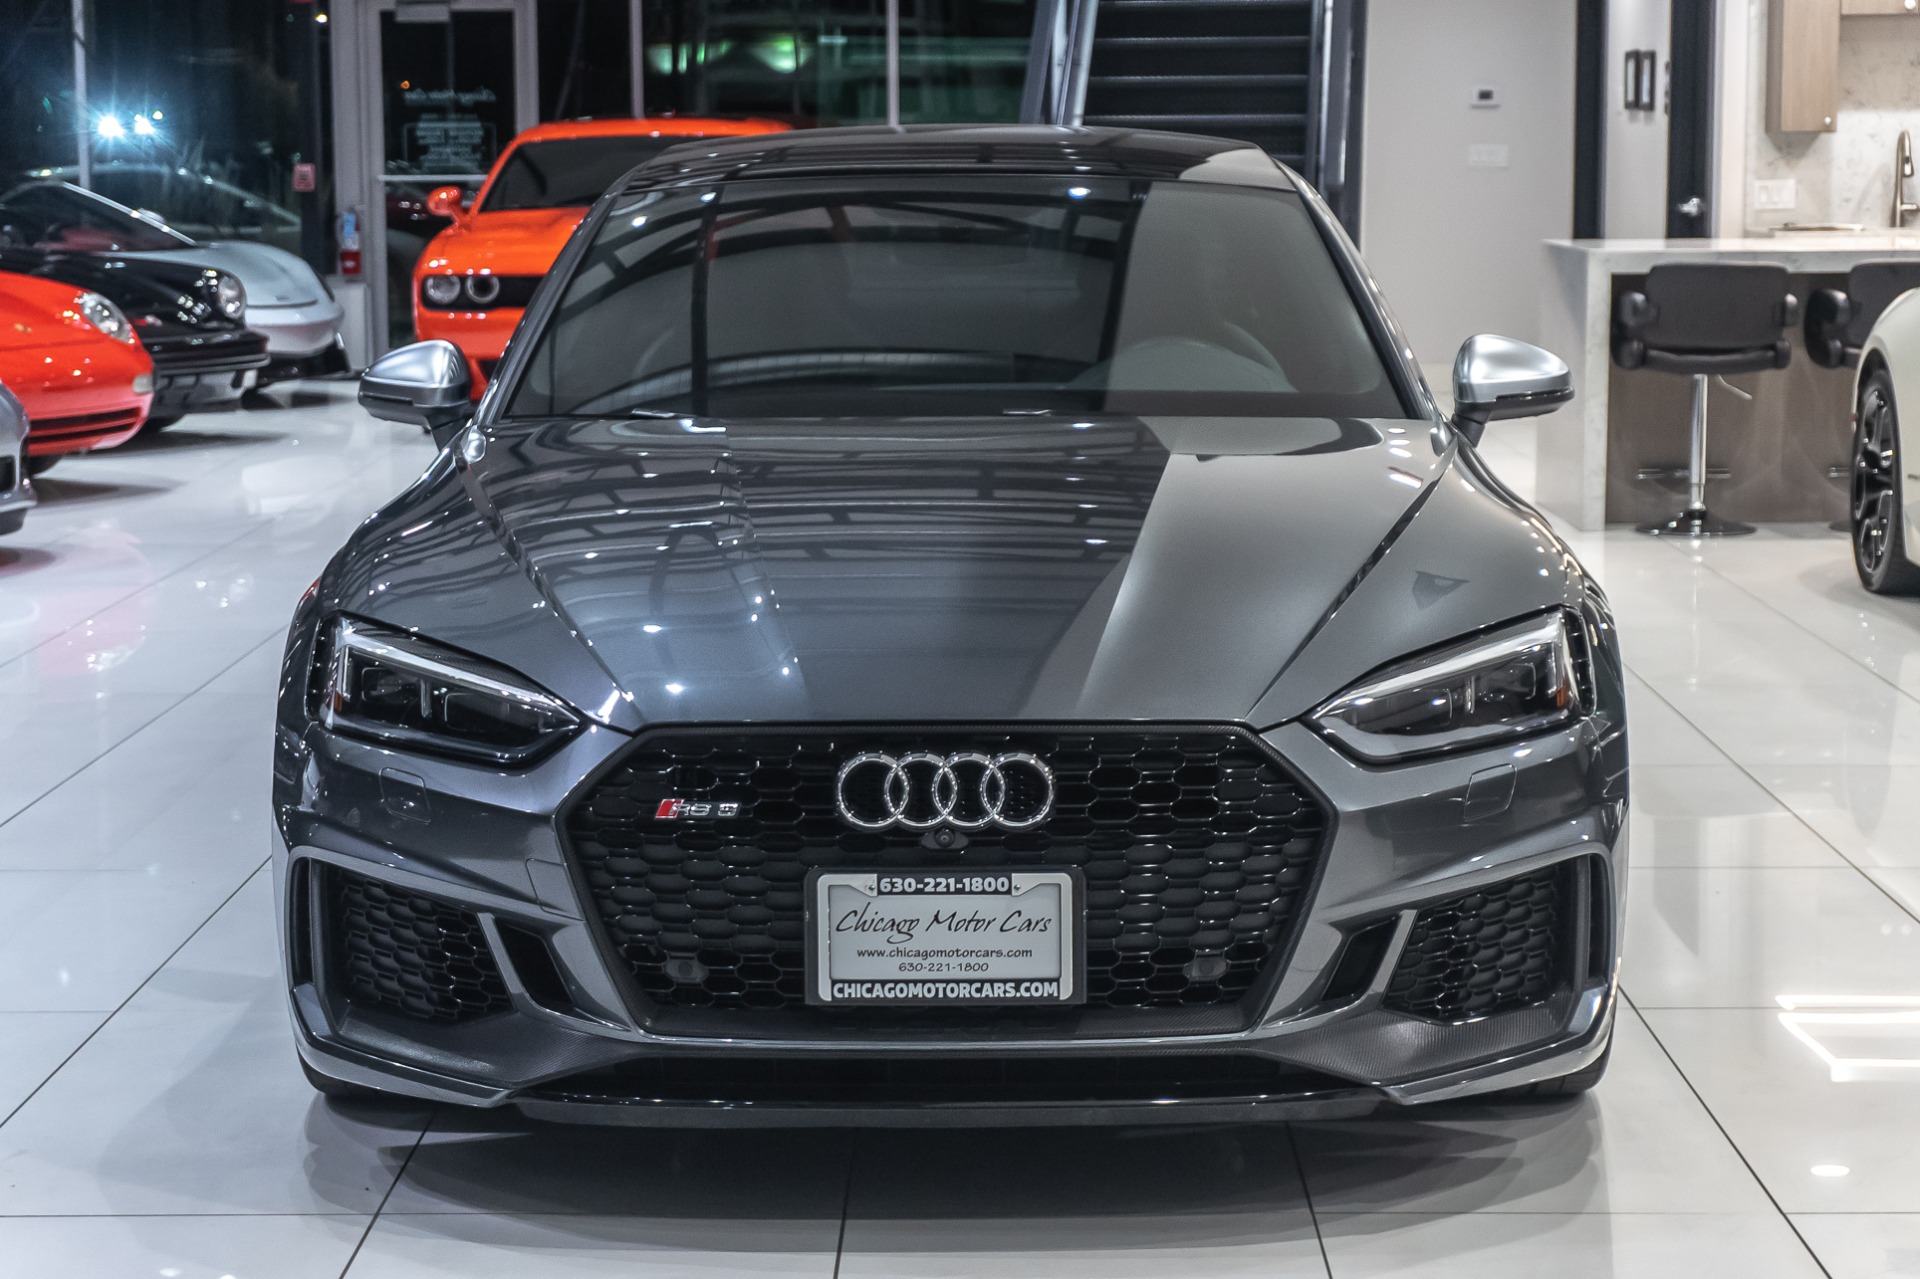 Used 2018 Audi Rs5 Coupe Premium Sport Packages For Sale Special Pricing Chicago Motor Cars Stock 16544